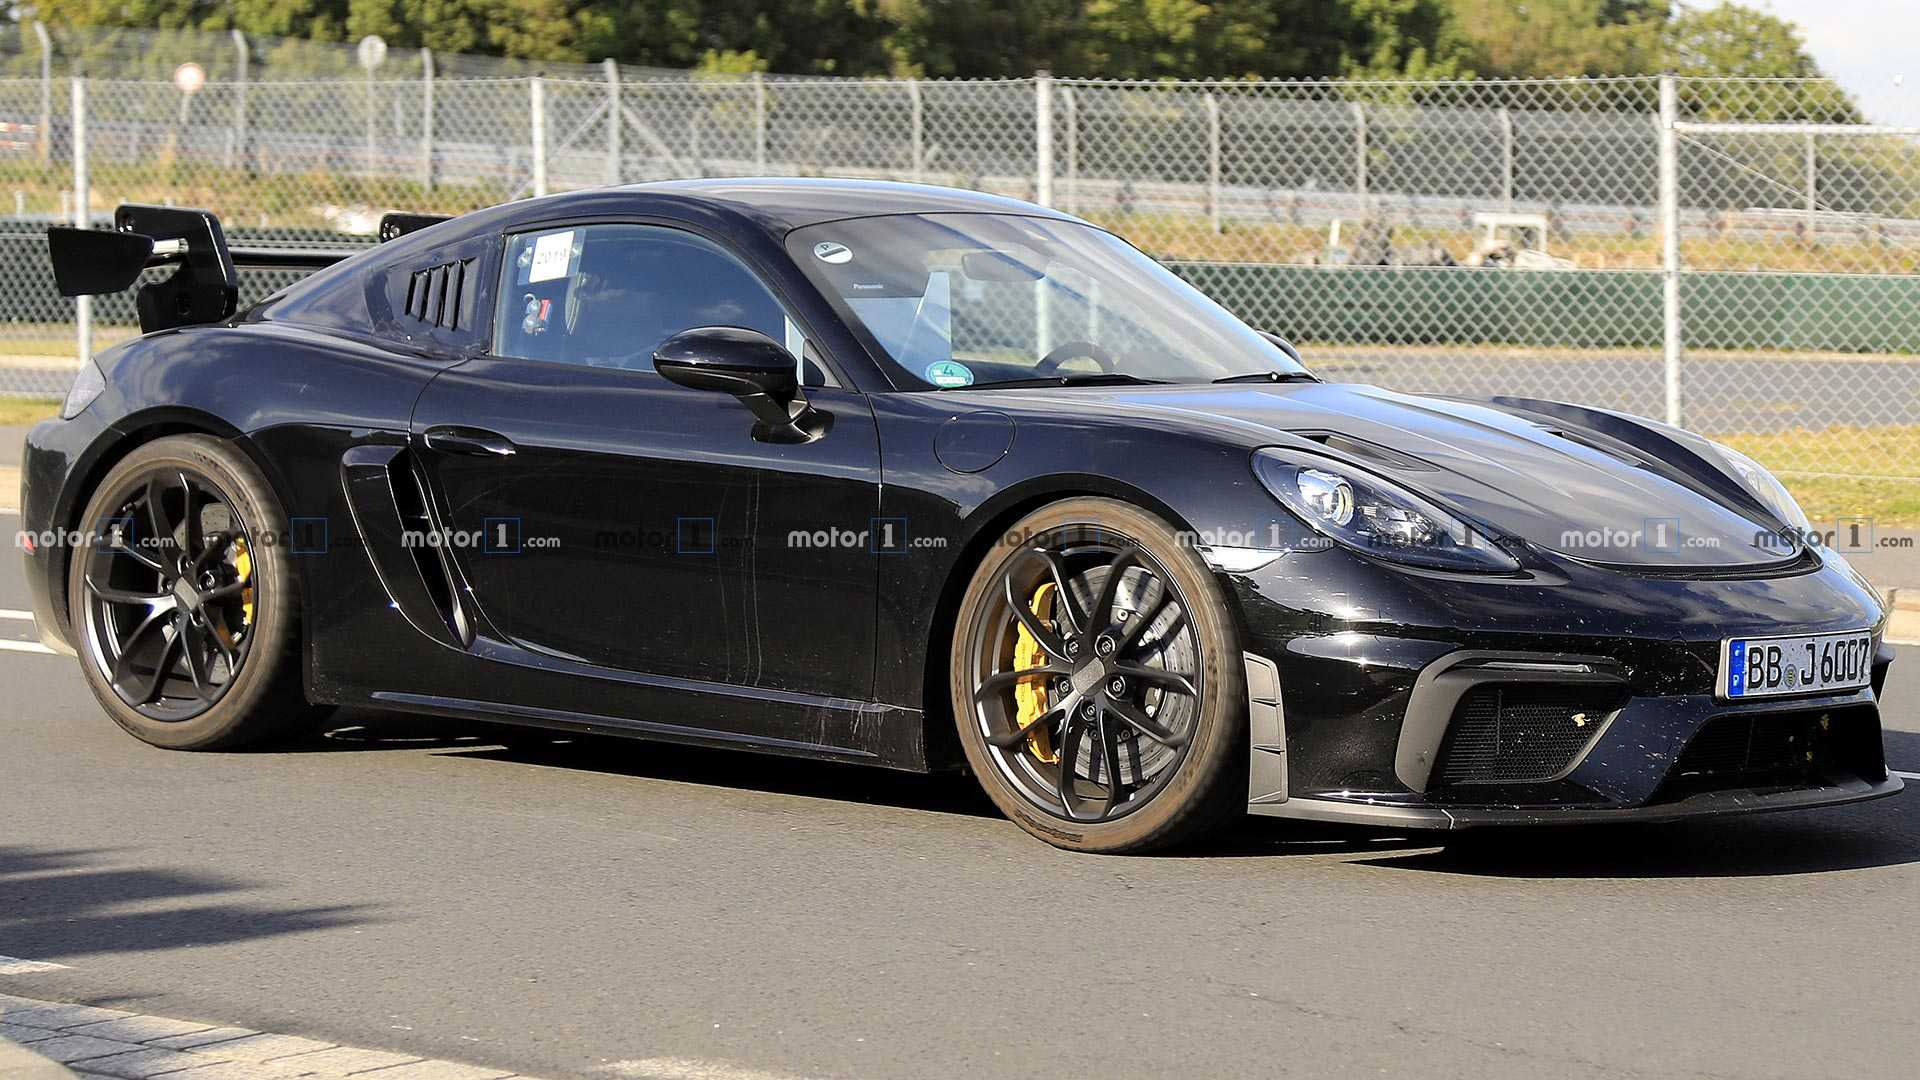 Porsche Gt4 Rs >> Porsche 718 Cayman Gt4 Rs Spied Looking Lean And Mean